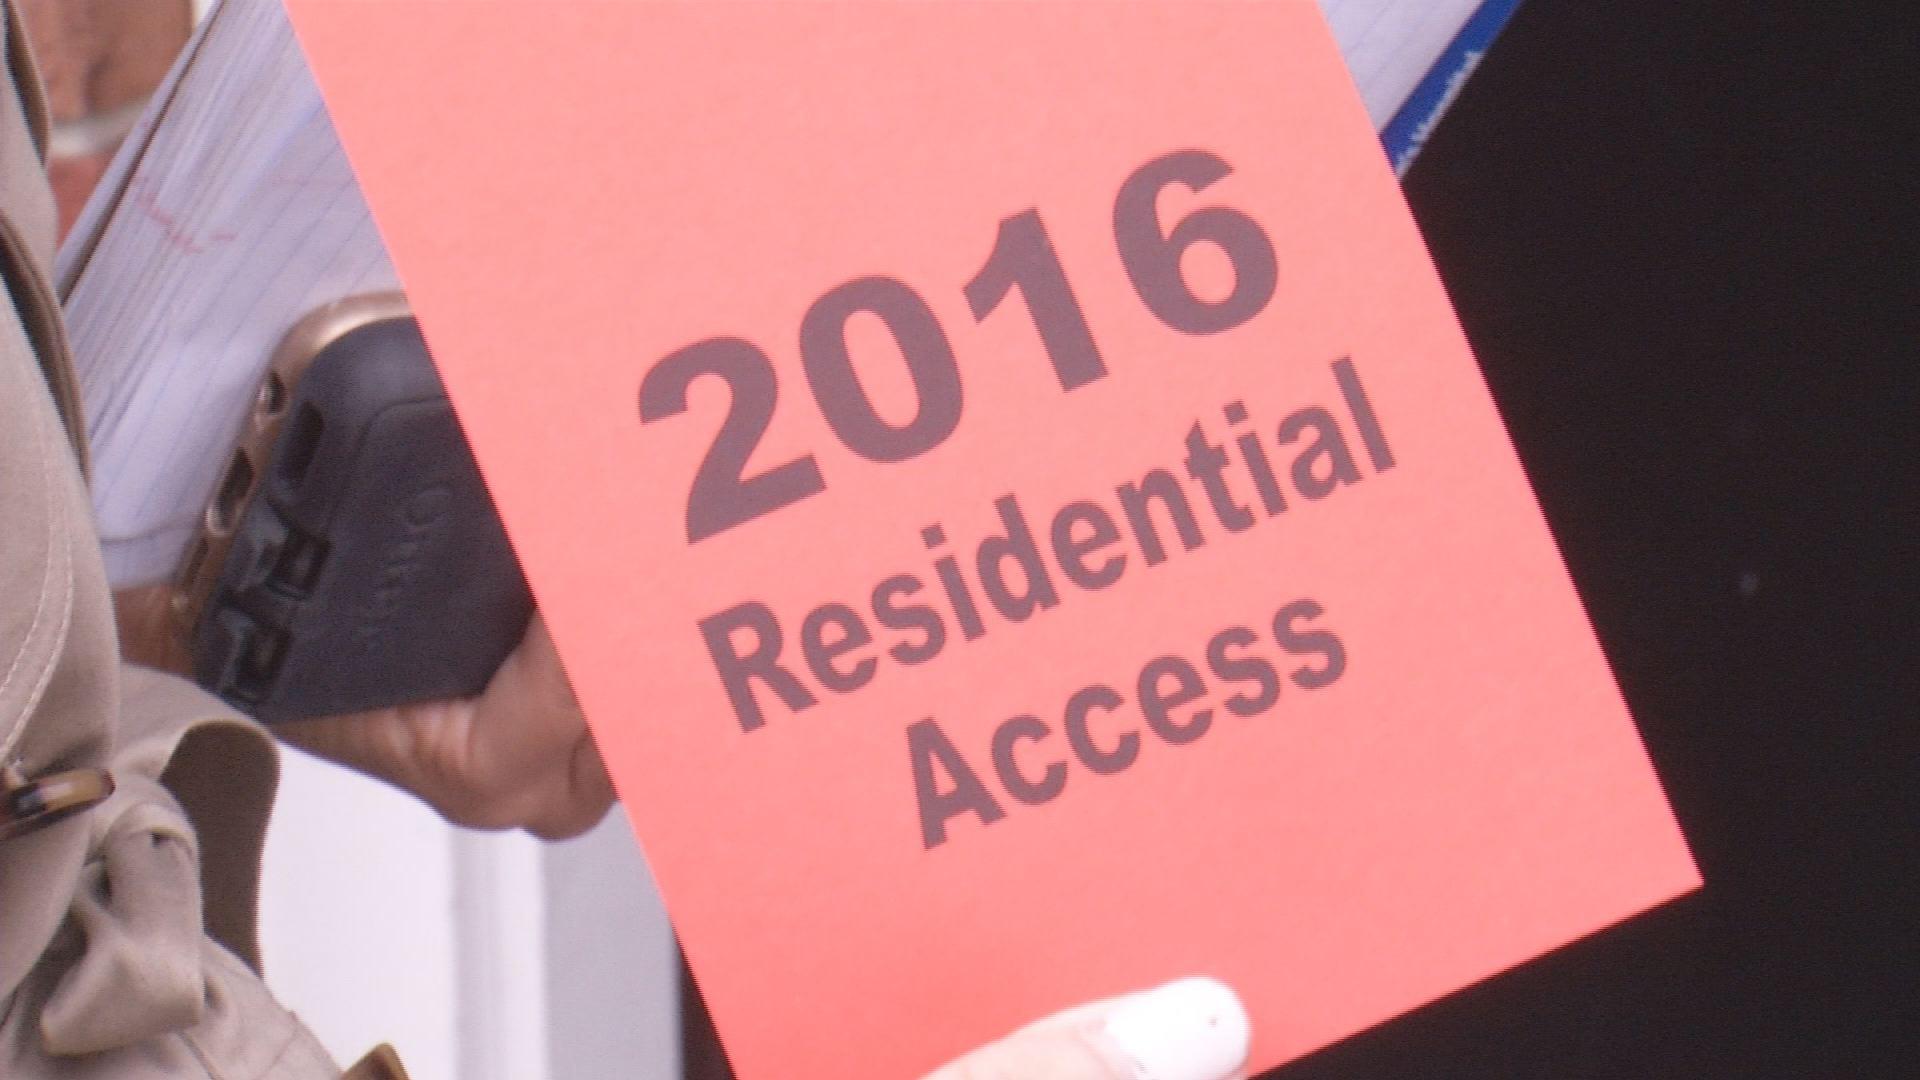 Masters 2016 residential access passes allow residents to get through their neighborhood._133827